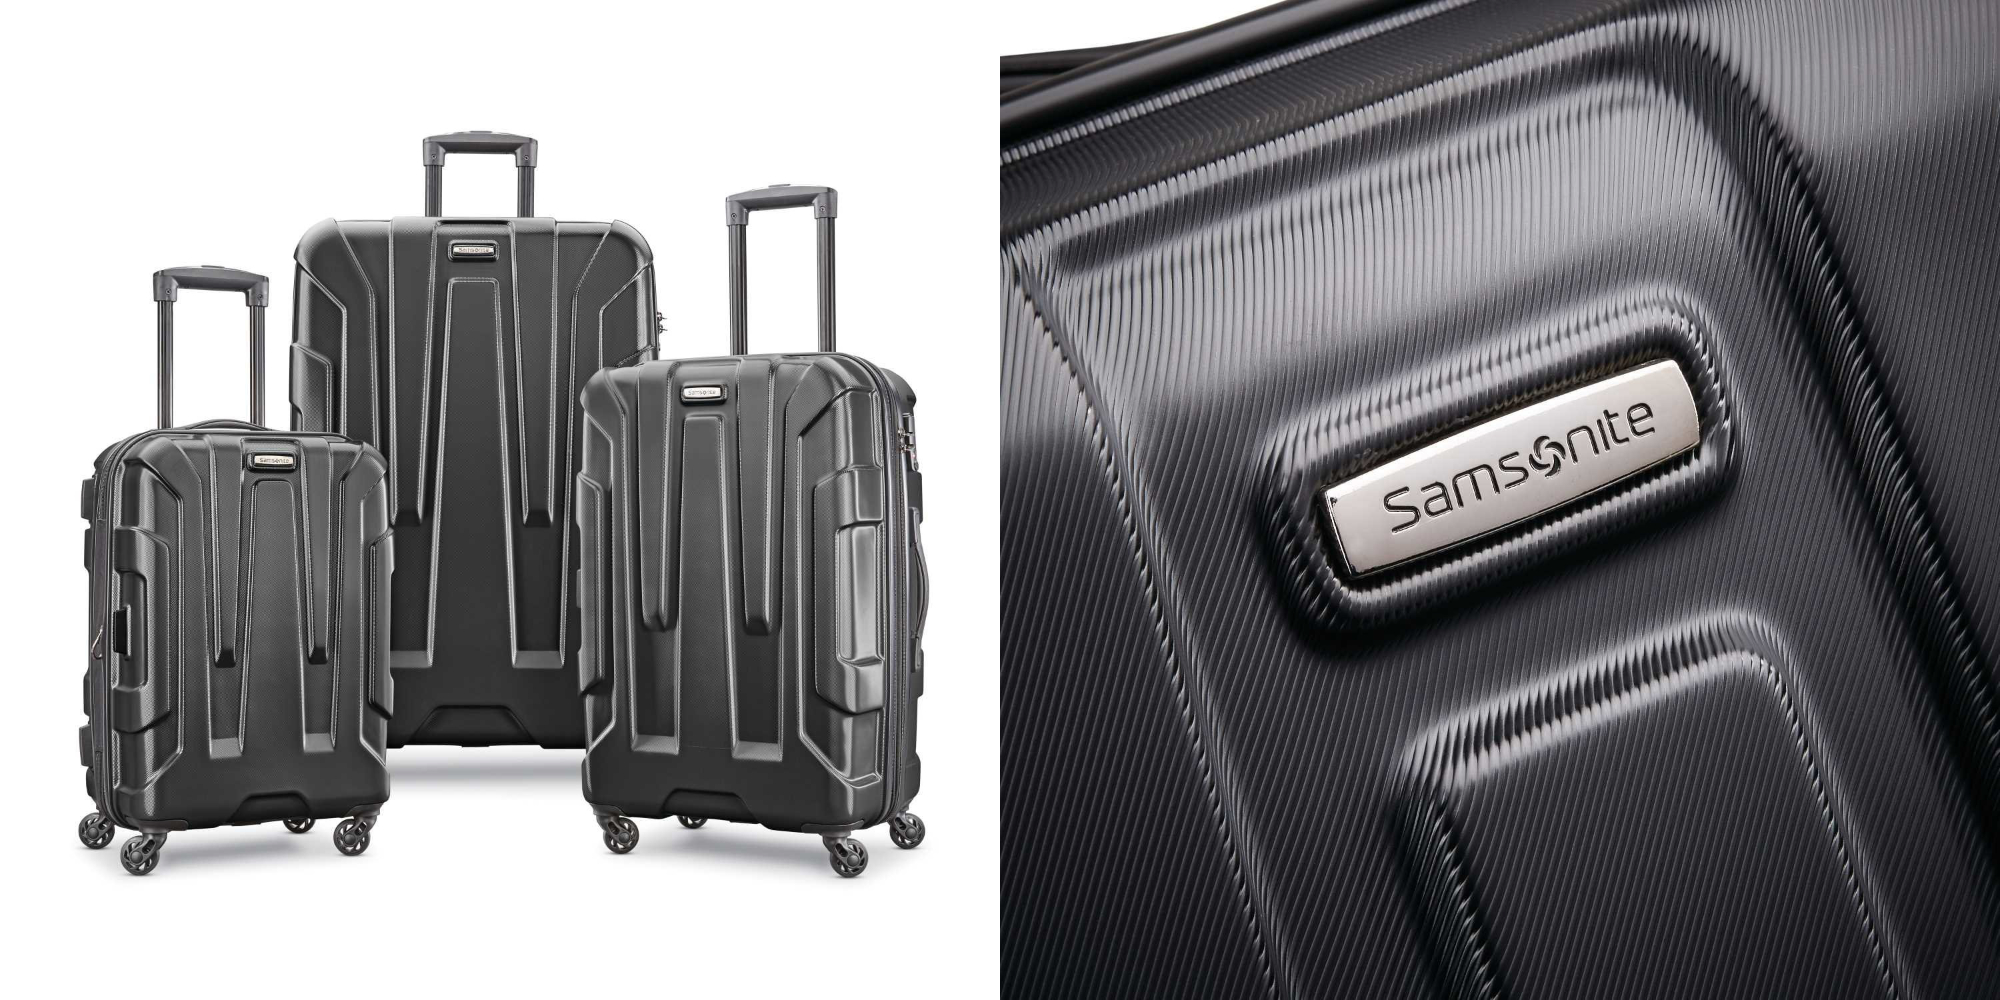 Samsonite's high-end 3-piece Centric Spinner Luggage Set drops to $229 shipped (Save $70)